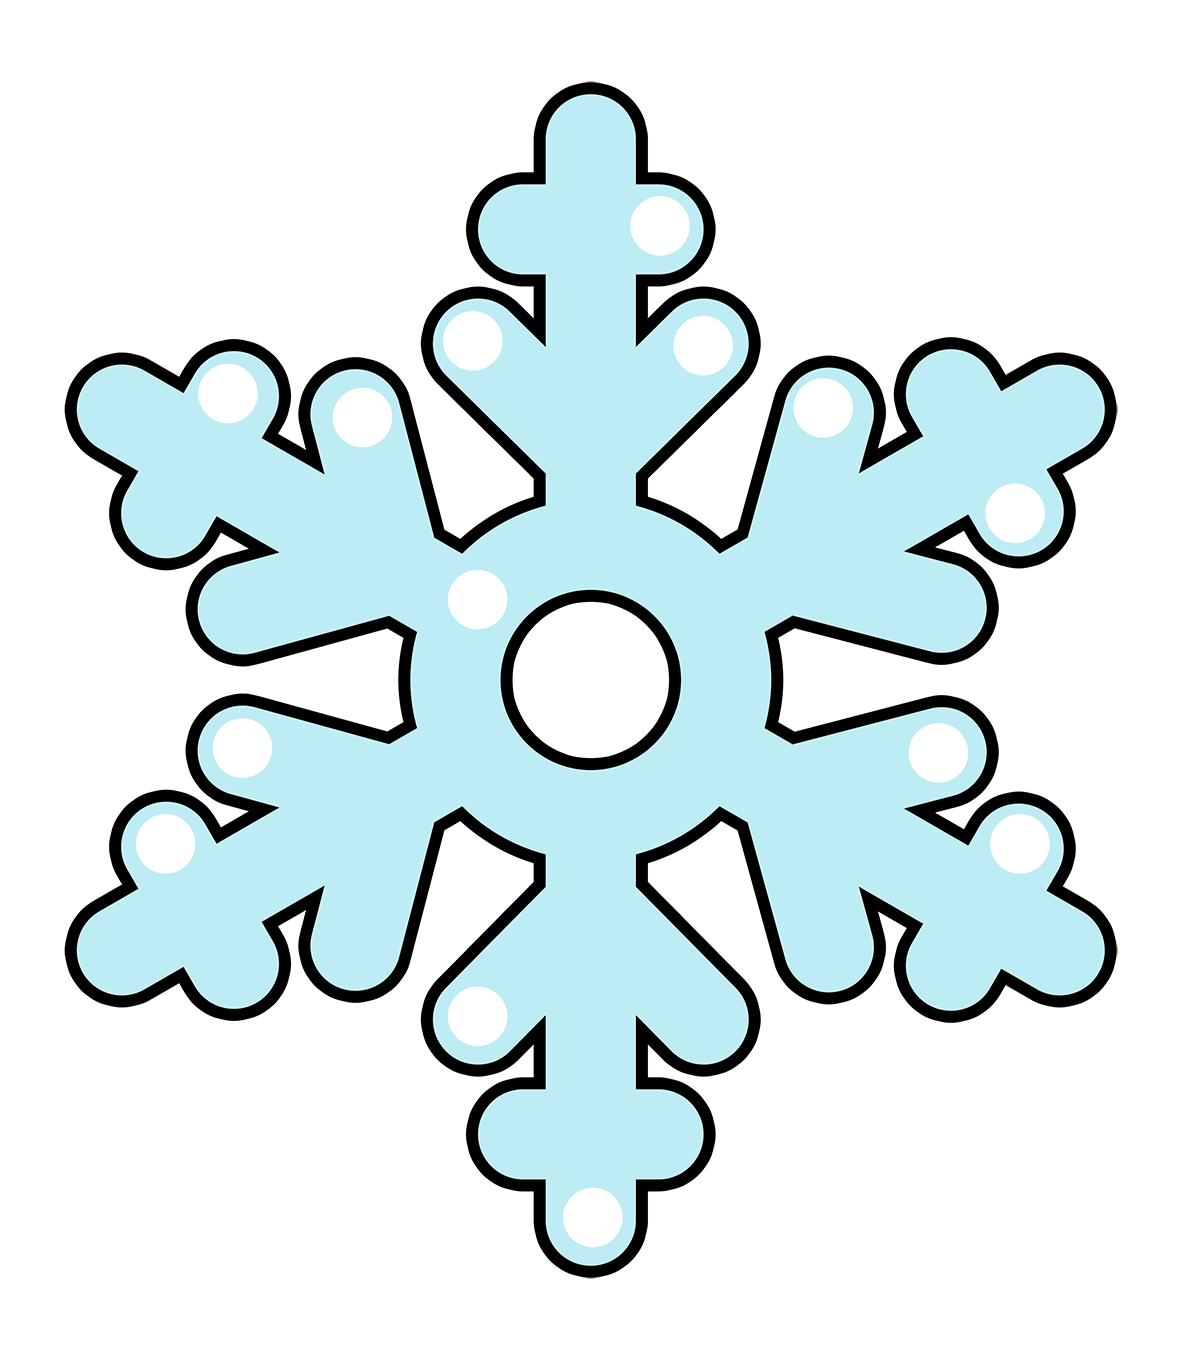 Free Cartoon Snowflake Clip Art · snowf-Free Cartoon Snowflake Clip Art · snowflake9-16